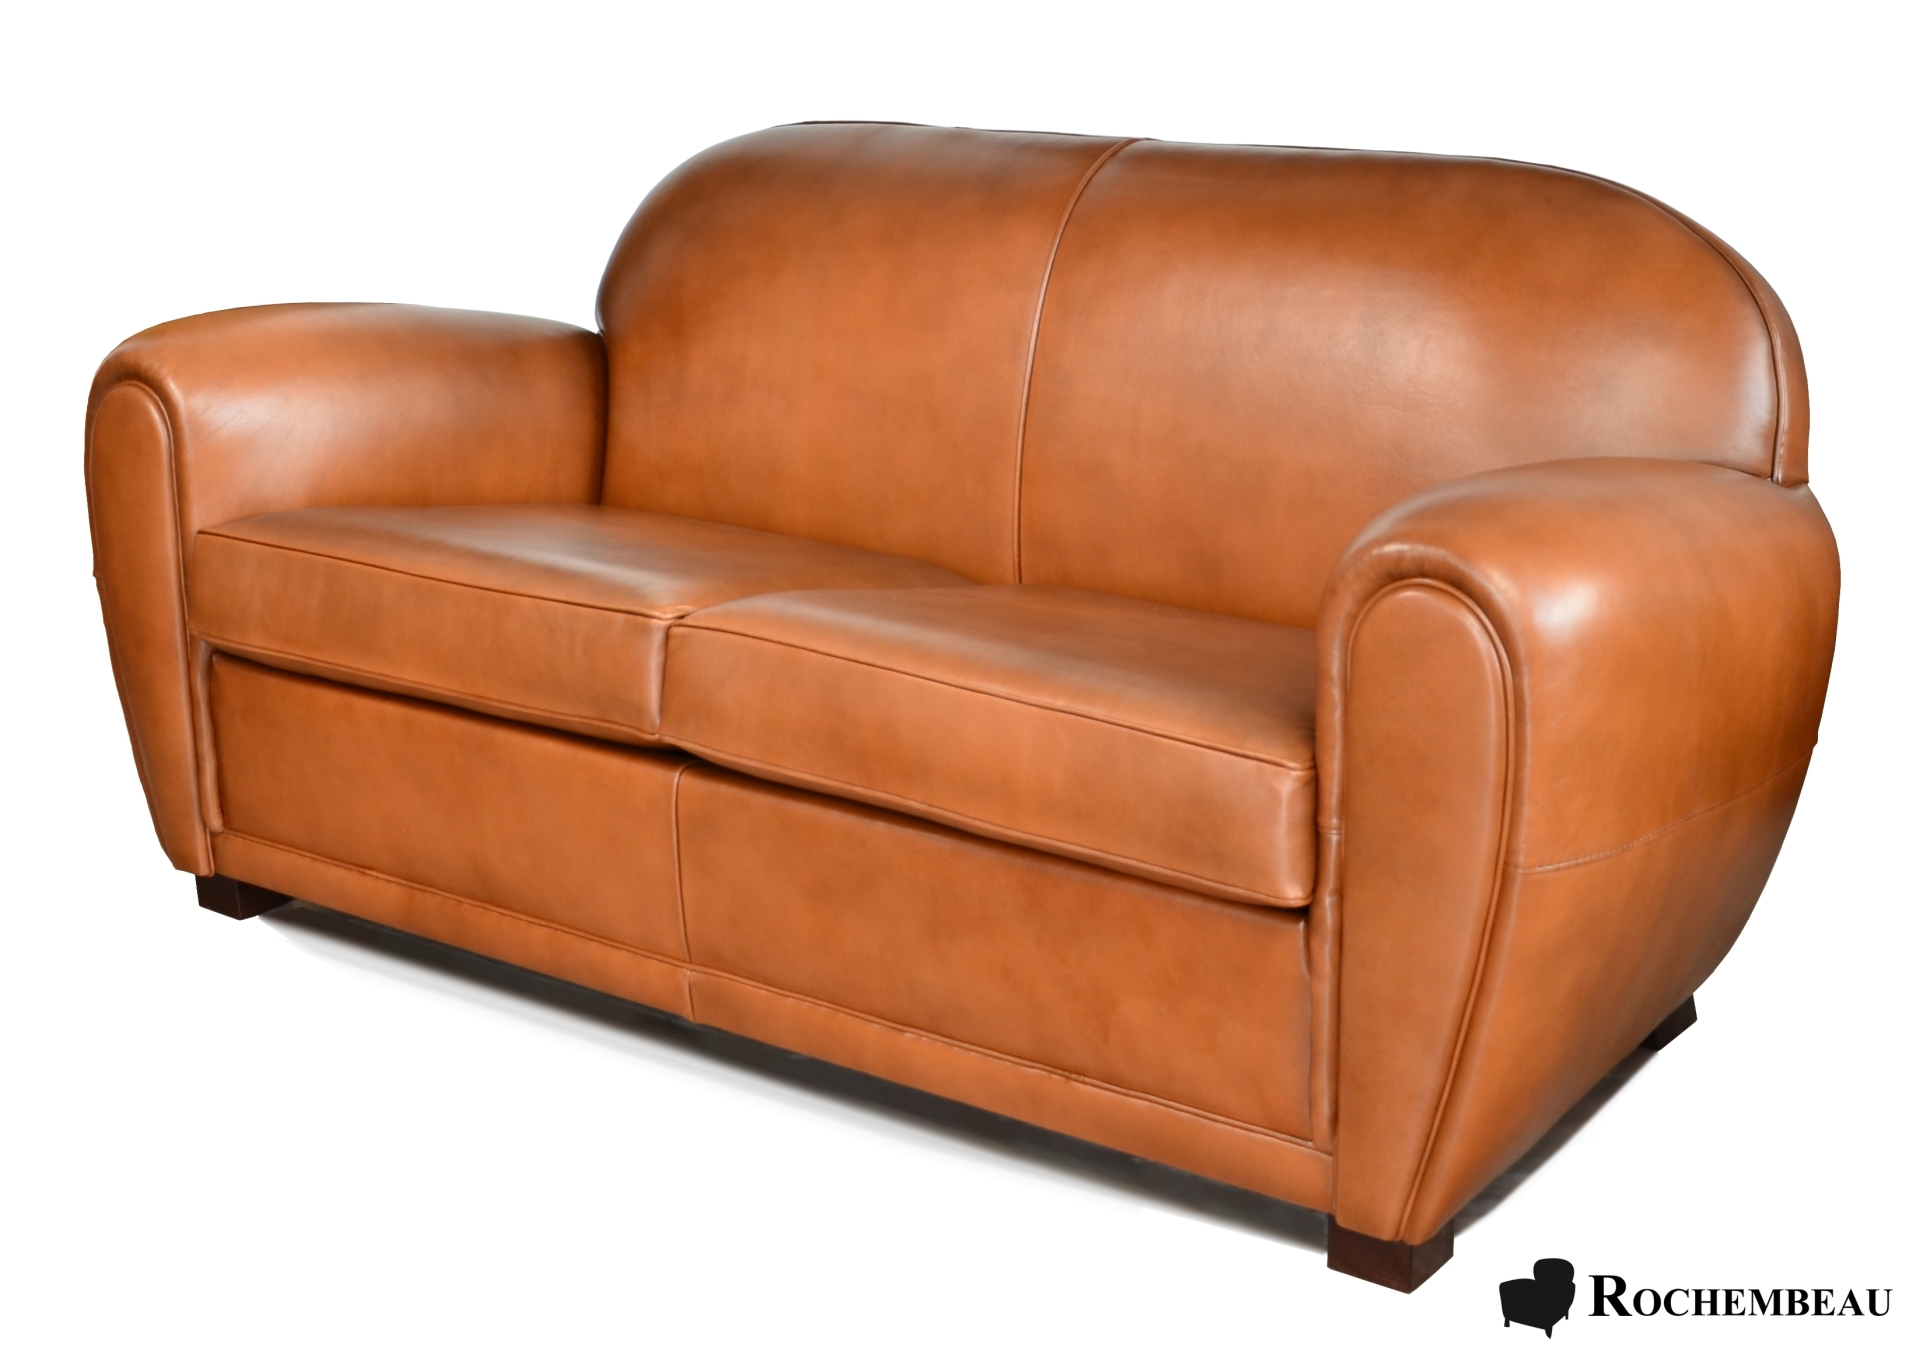 Chatham Club Sofa Top Grain Leather